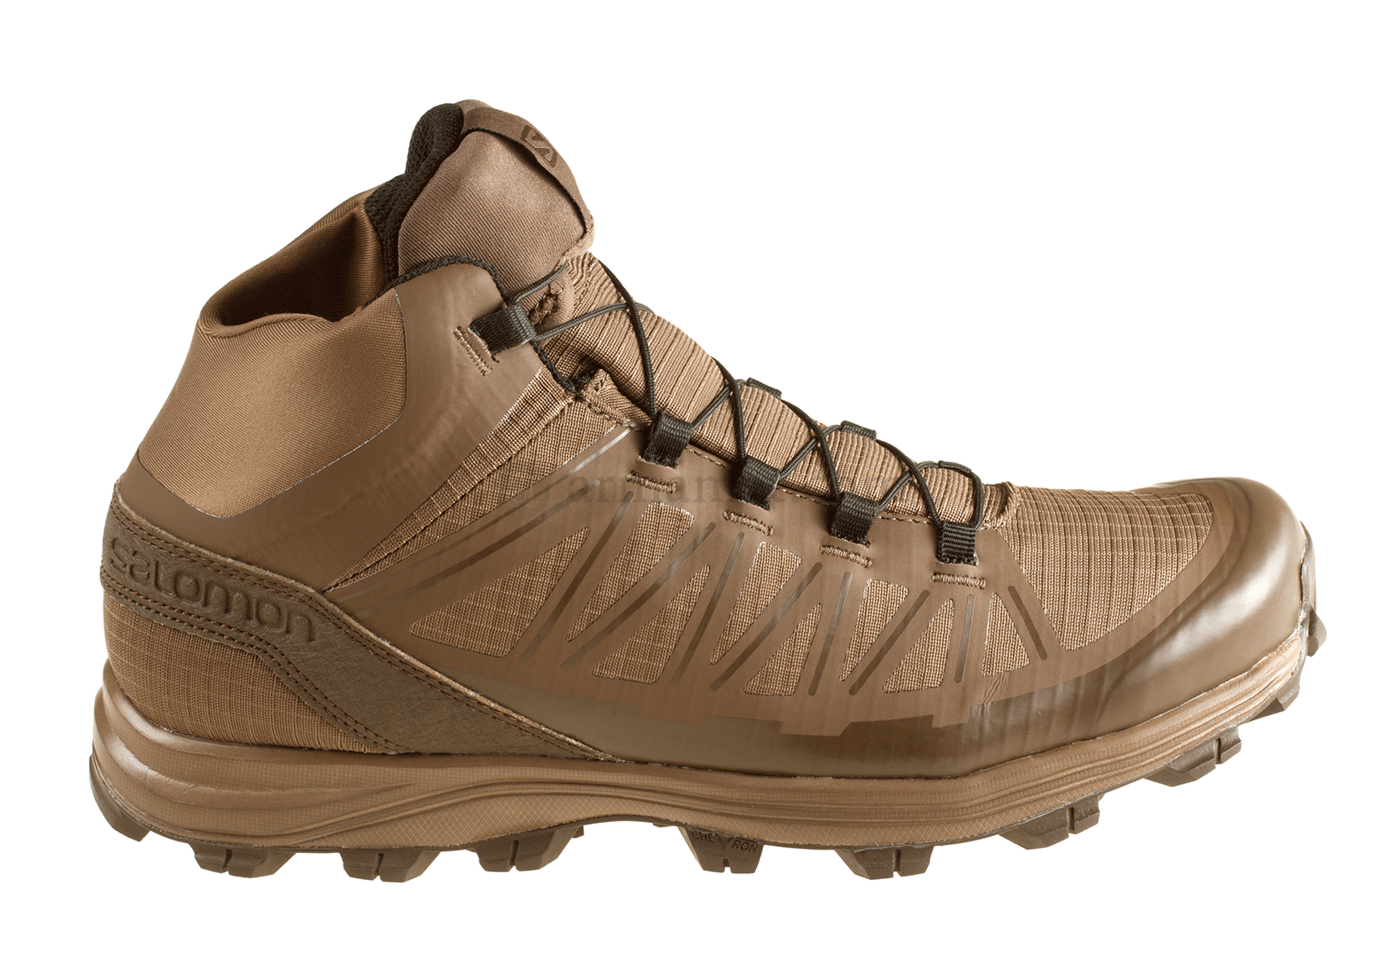 fe33970fa220 The Speed Assault is definitely a summer boot. It features a single layer  of ripstop synthetic canvas-like material which is in no way shape or form  ...